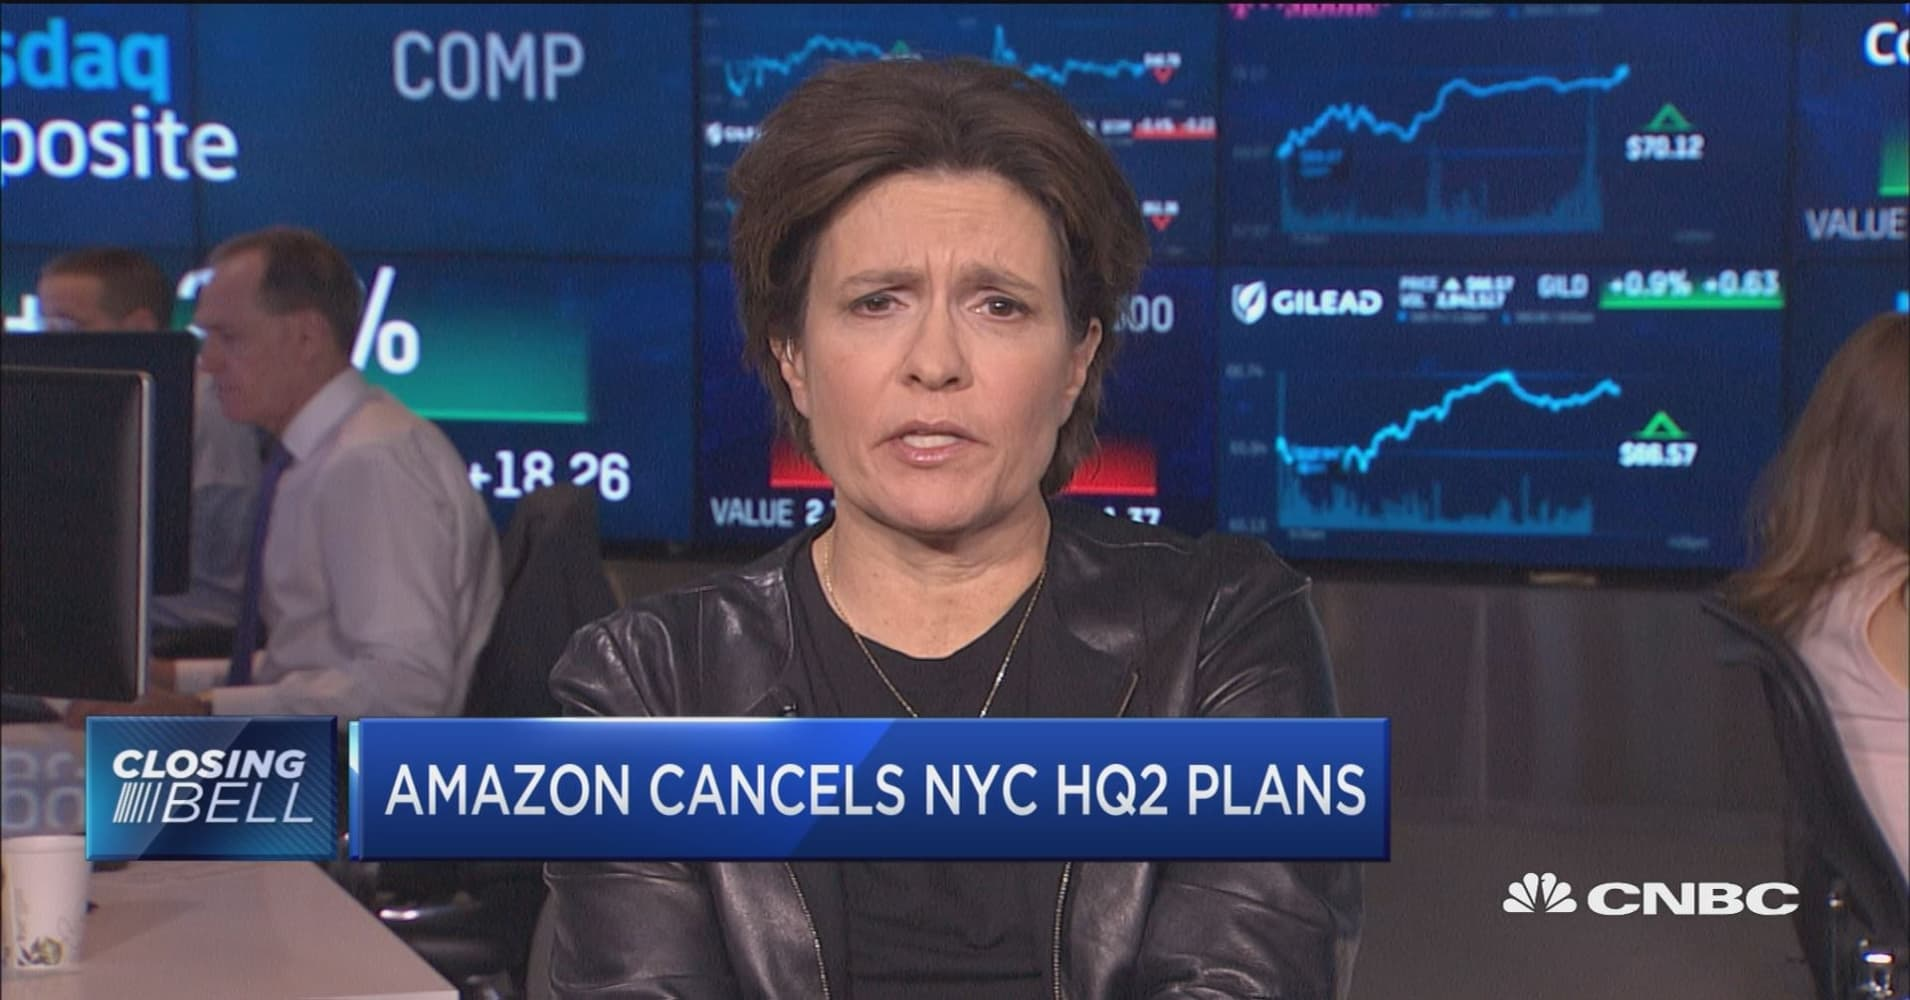 Amazon could have cooperated on new HQ2 deal, says Recode's Kara Swisher